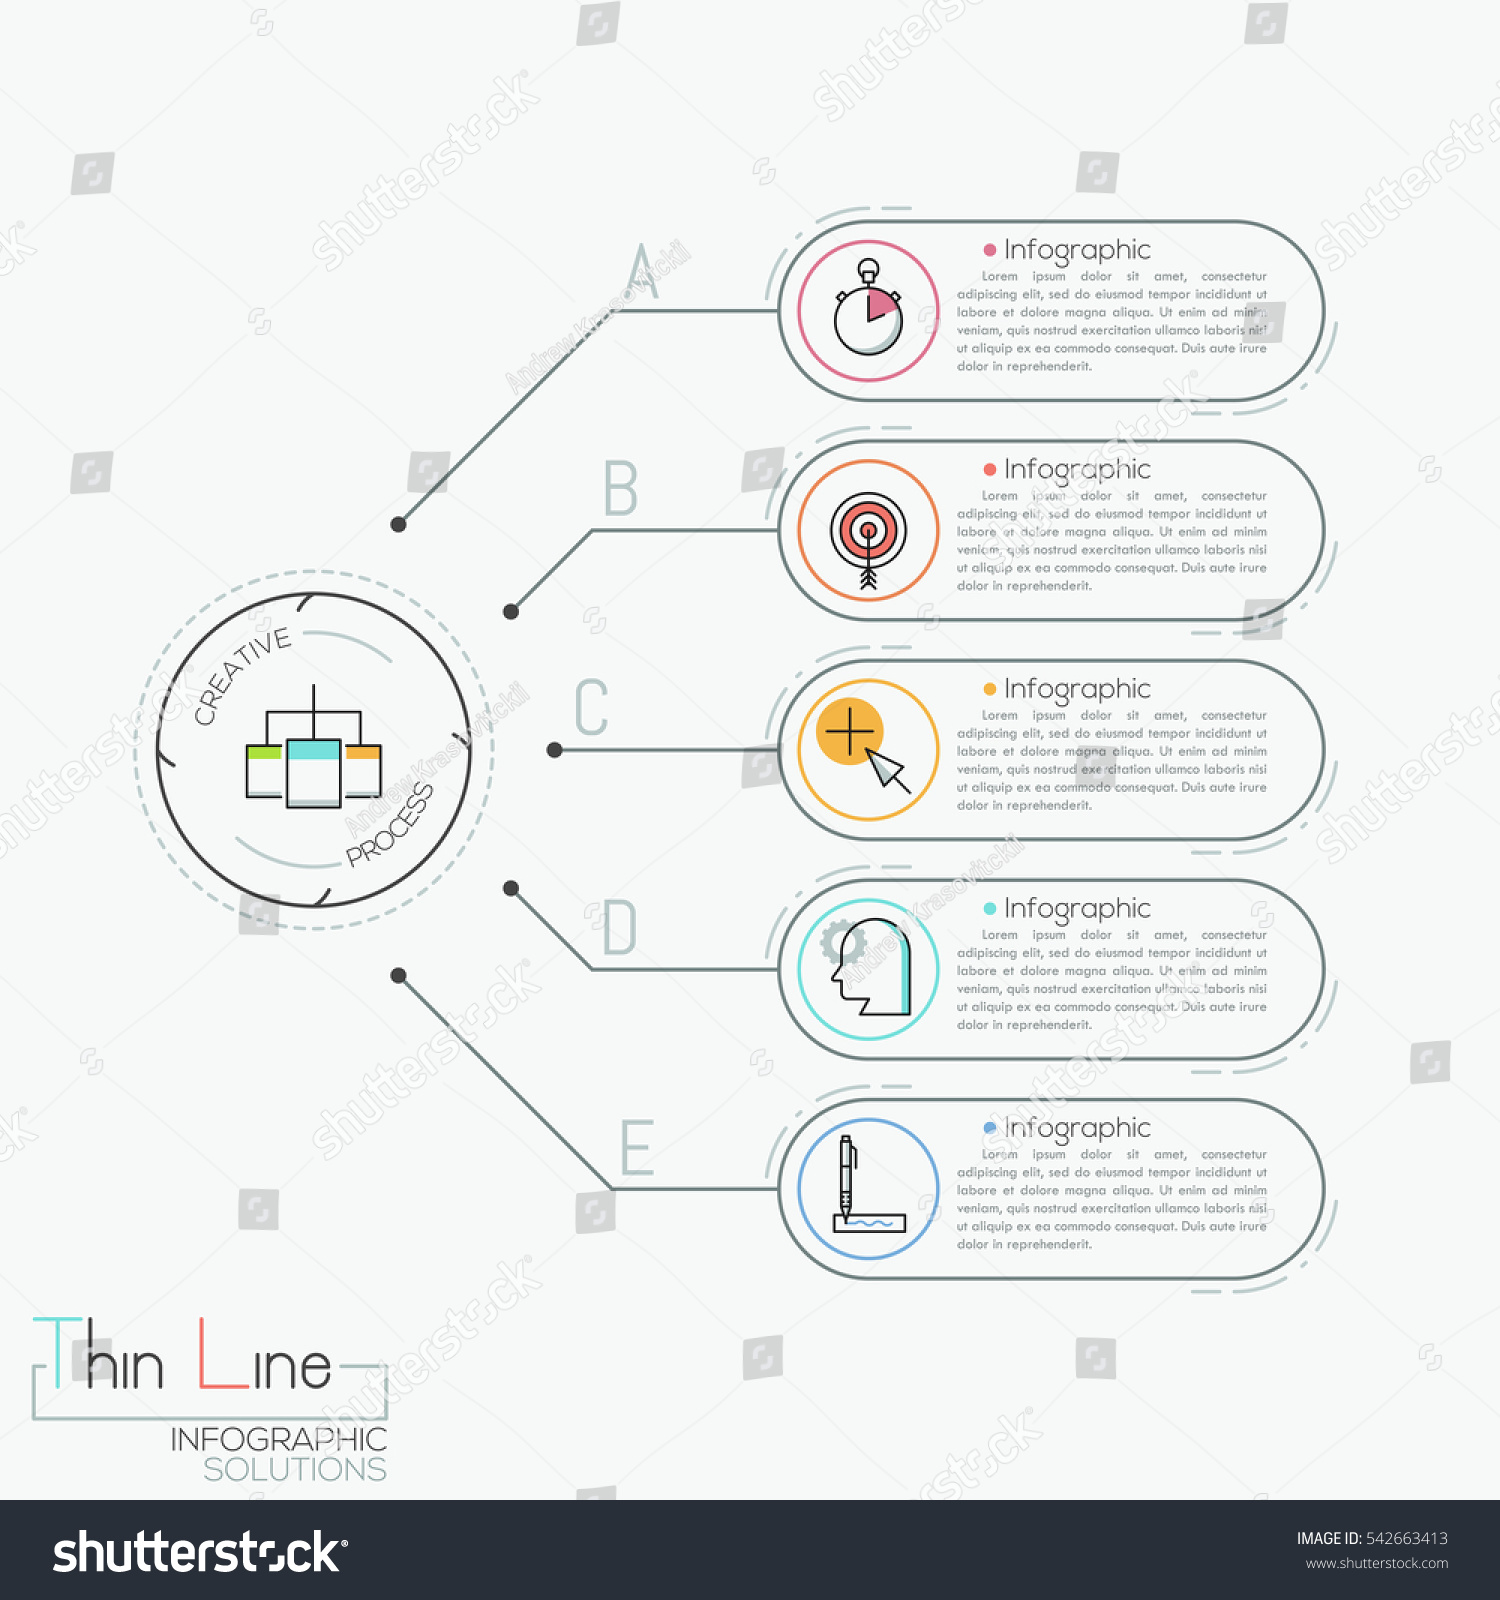 Infographic word doc template